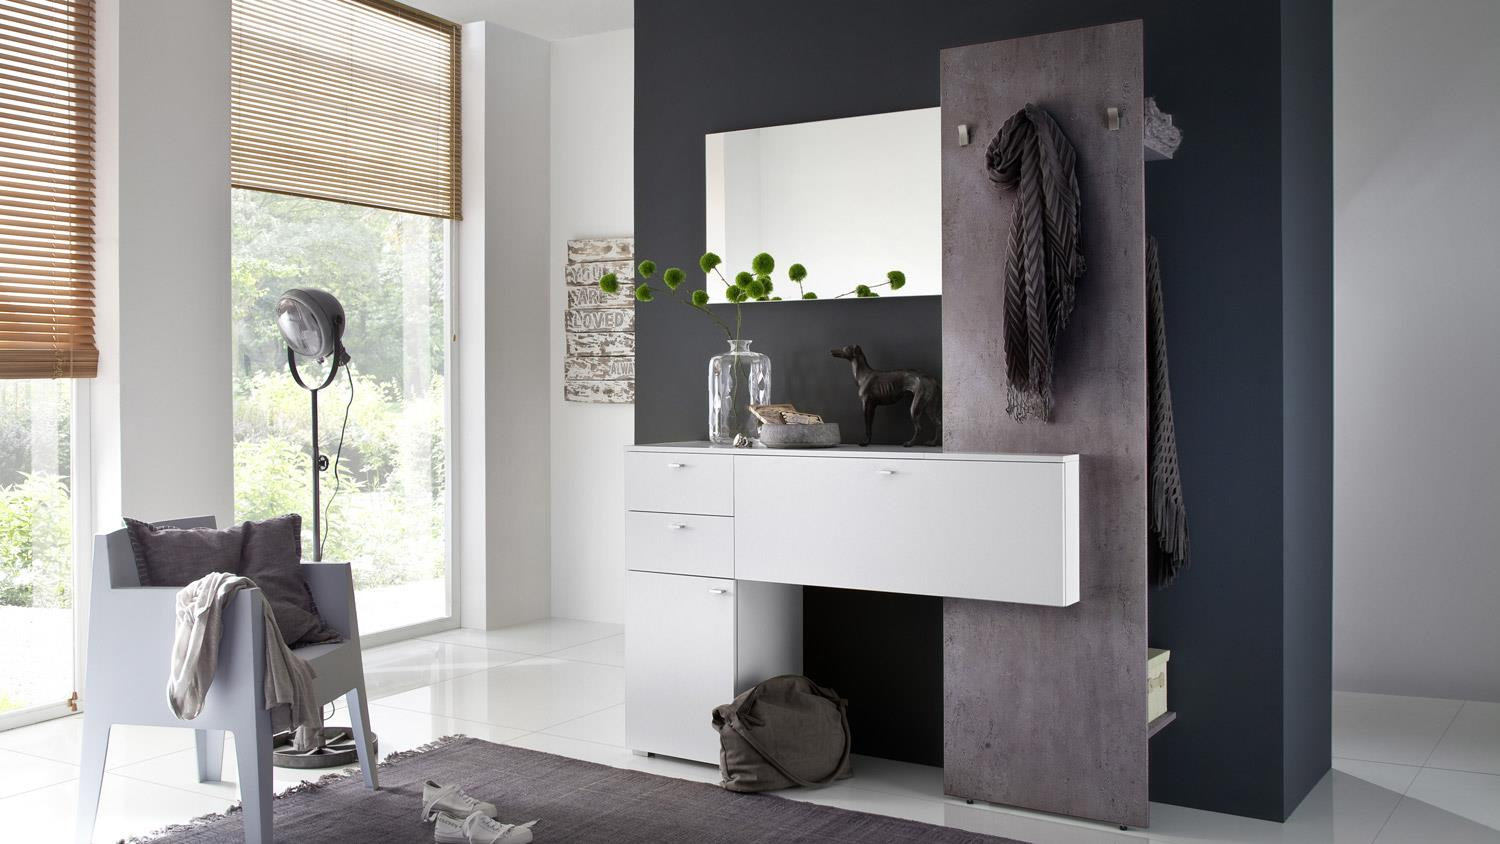 garderobe zuba 3 wandgarderobe flurgarderobe diele wei melamin beton. Black Bedroom Furniture Sets. Home Design Ideas